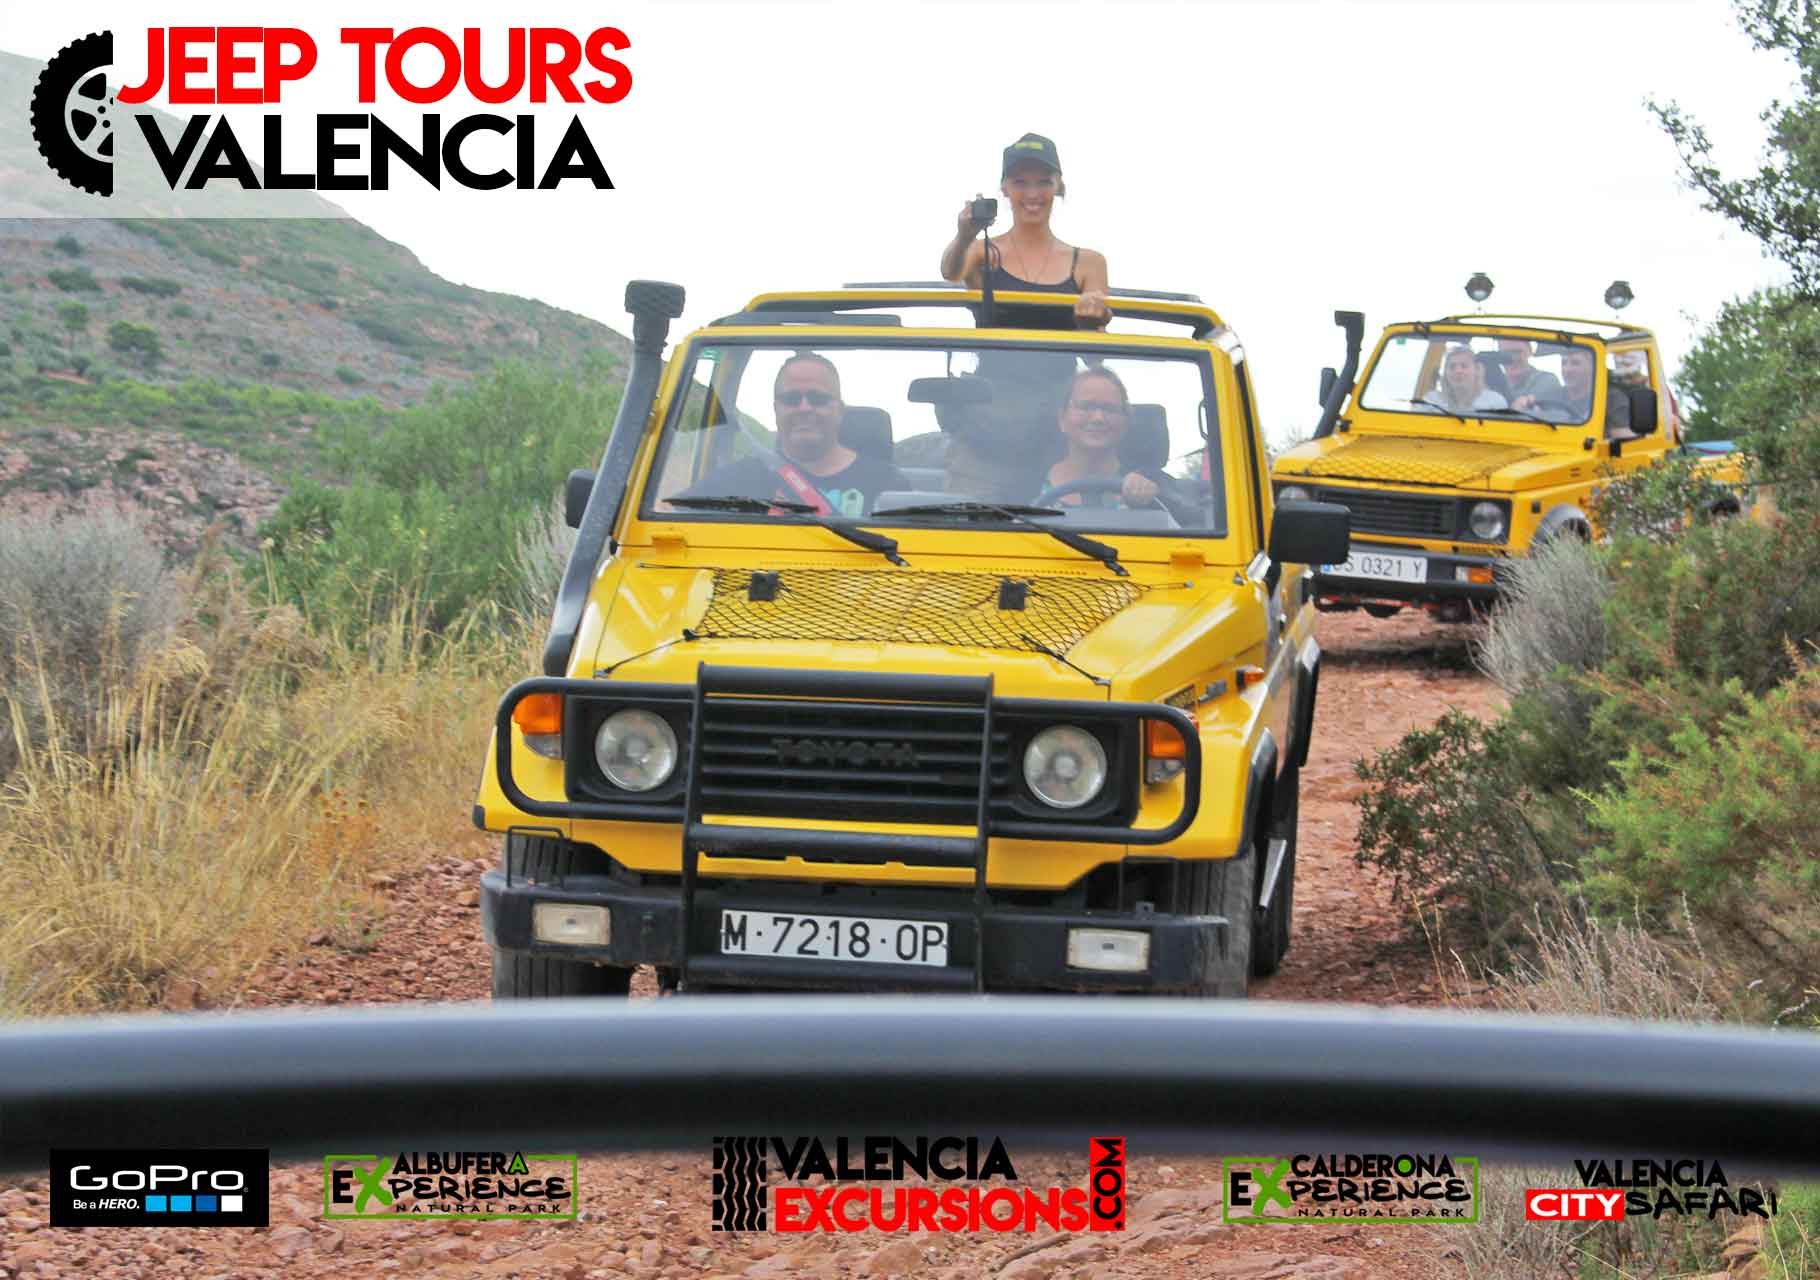 Jeep tour in Valencia visiting Calderona Mountains NAtional Park. Adventure tour 4x4